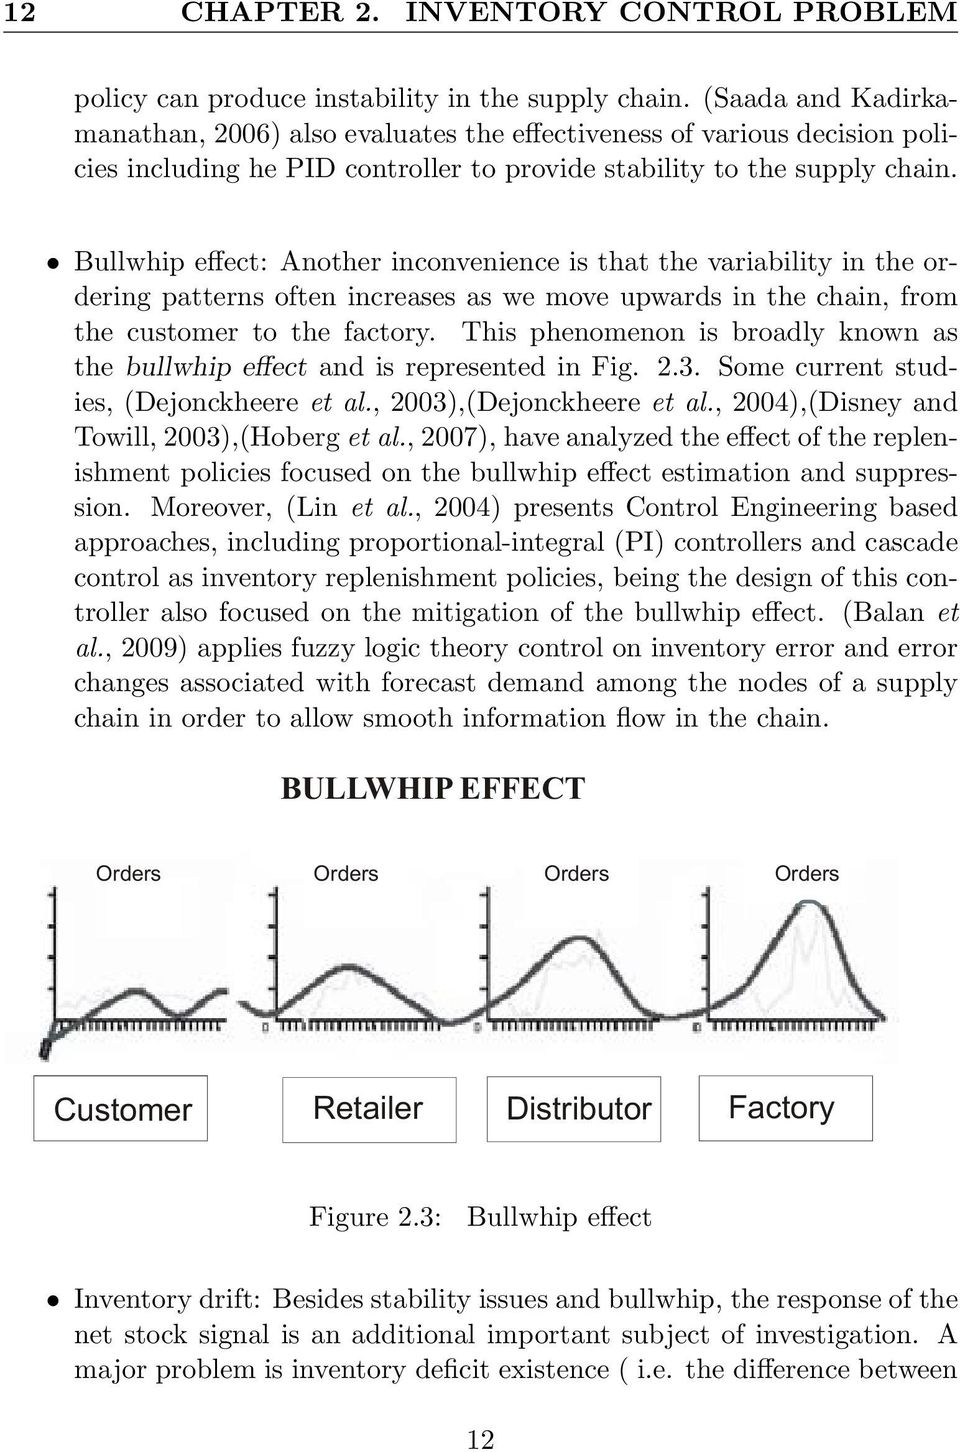 Bullwhip effect: Another inconvenience is that the variability in the ordering patterns often increases as we move upwards in the chain, from the customer to the factory.